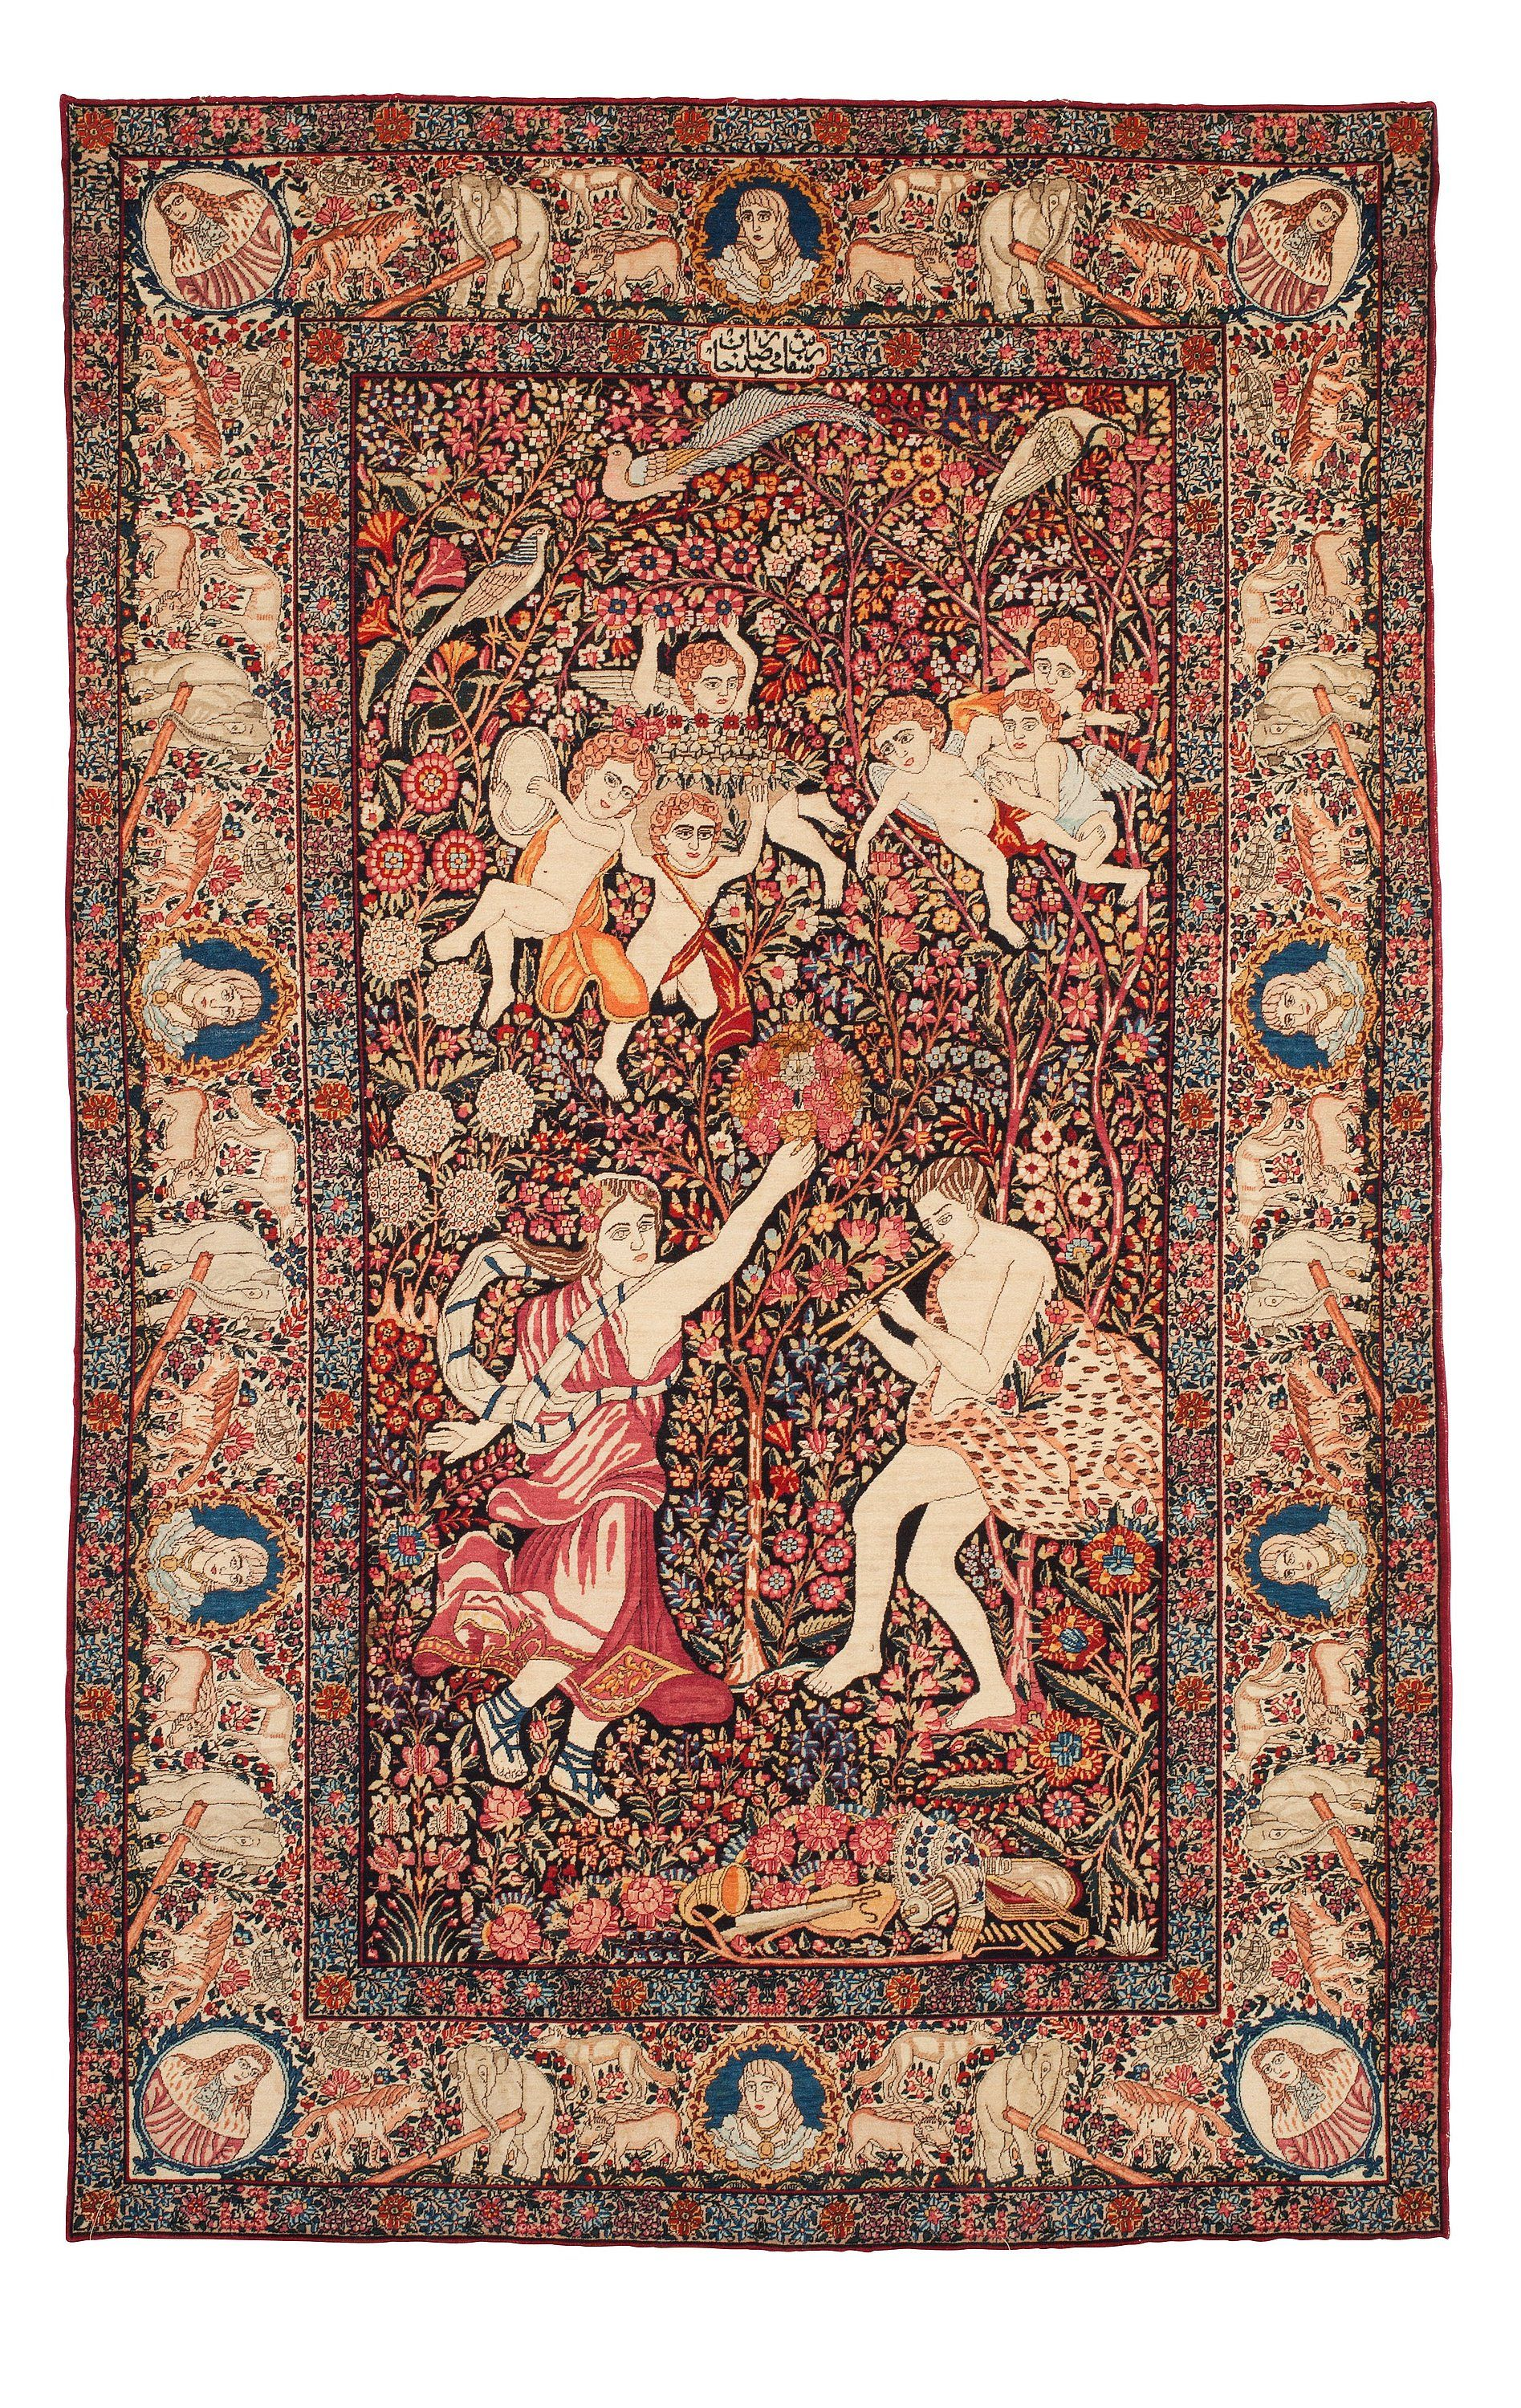 Persian Kerman Laver Rug Unusual Neoclassical Design With Inscription Commissioned By Mohammad Reza Khan Persian Culture Ancient Persia Iranian Art